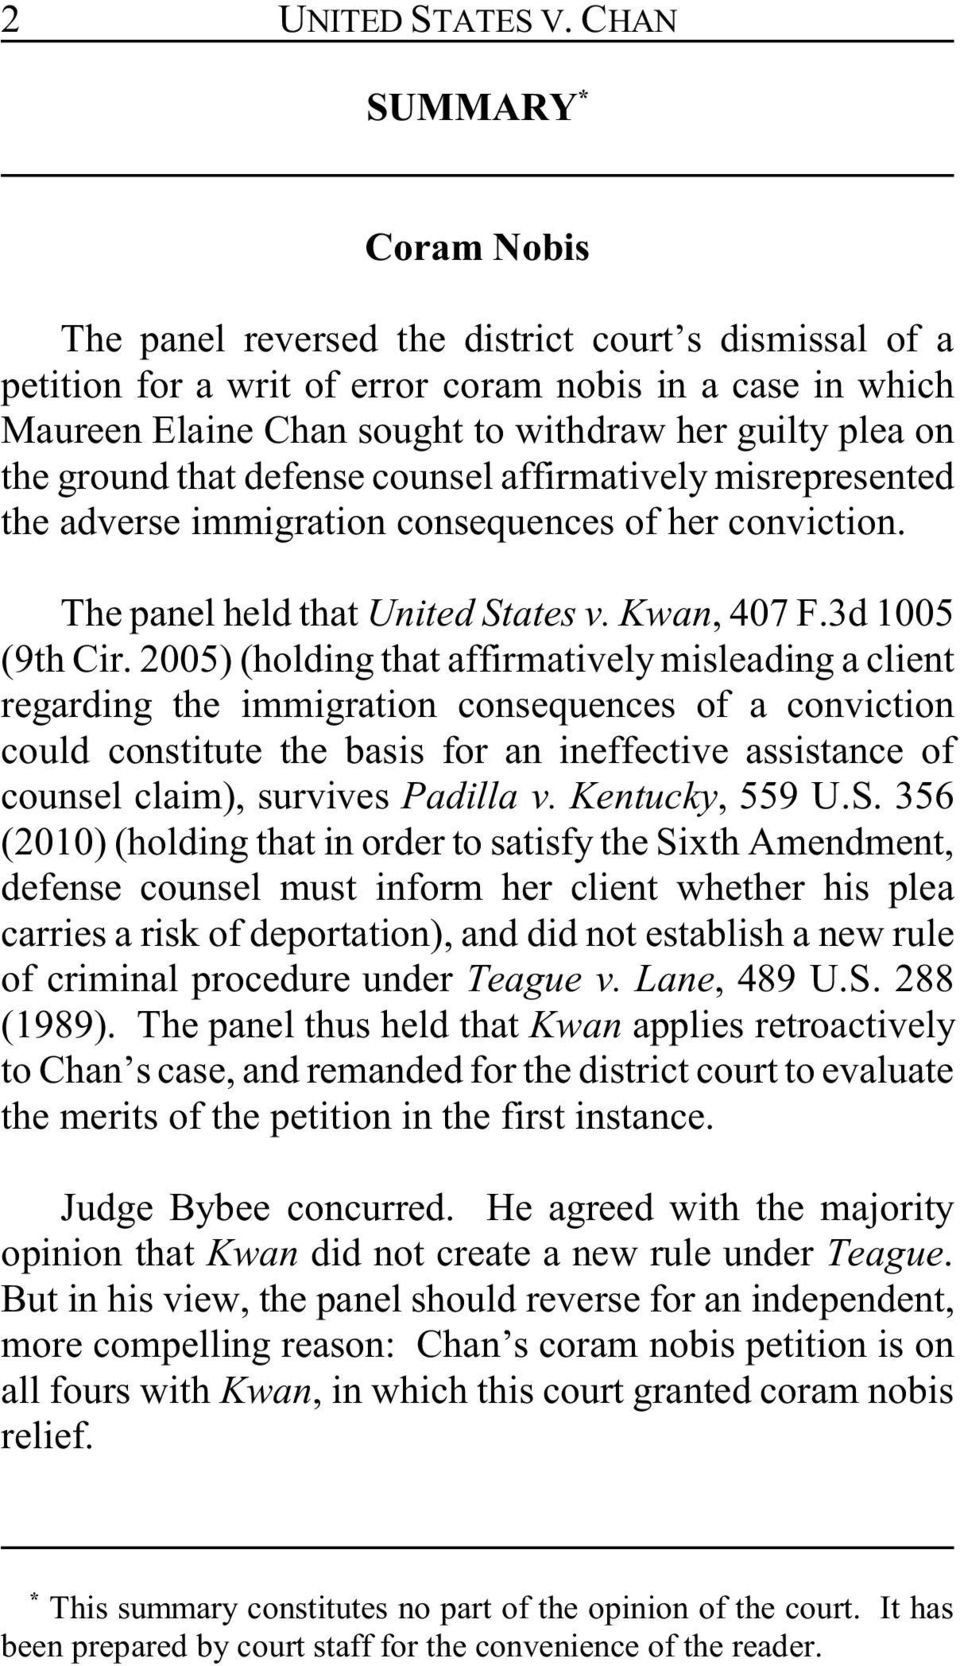 the ground that defense counsel affirmatively misrepresented the adverse immigration consequences of her conviction. The panel held that United States v. Kwan, 407 F.3d 1005 (9th Cir.